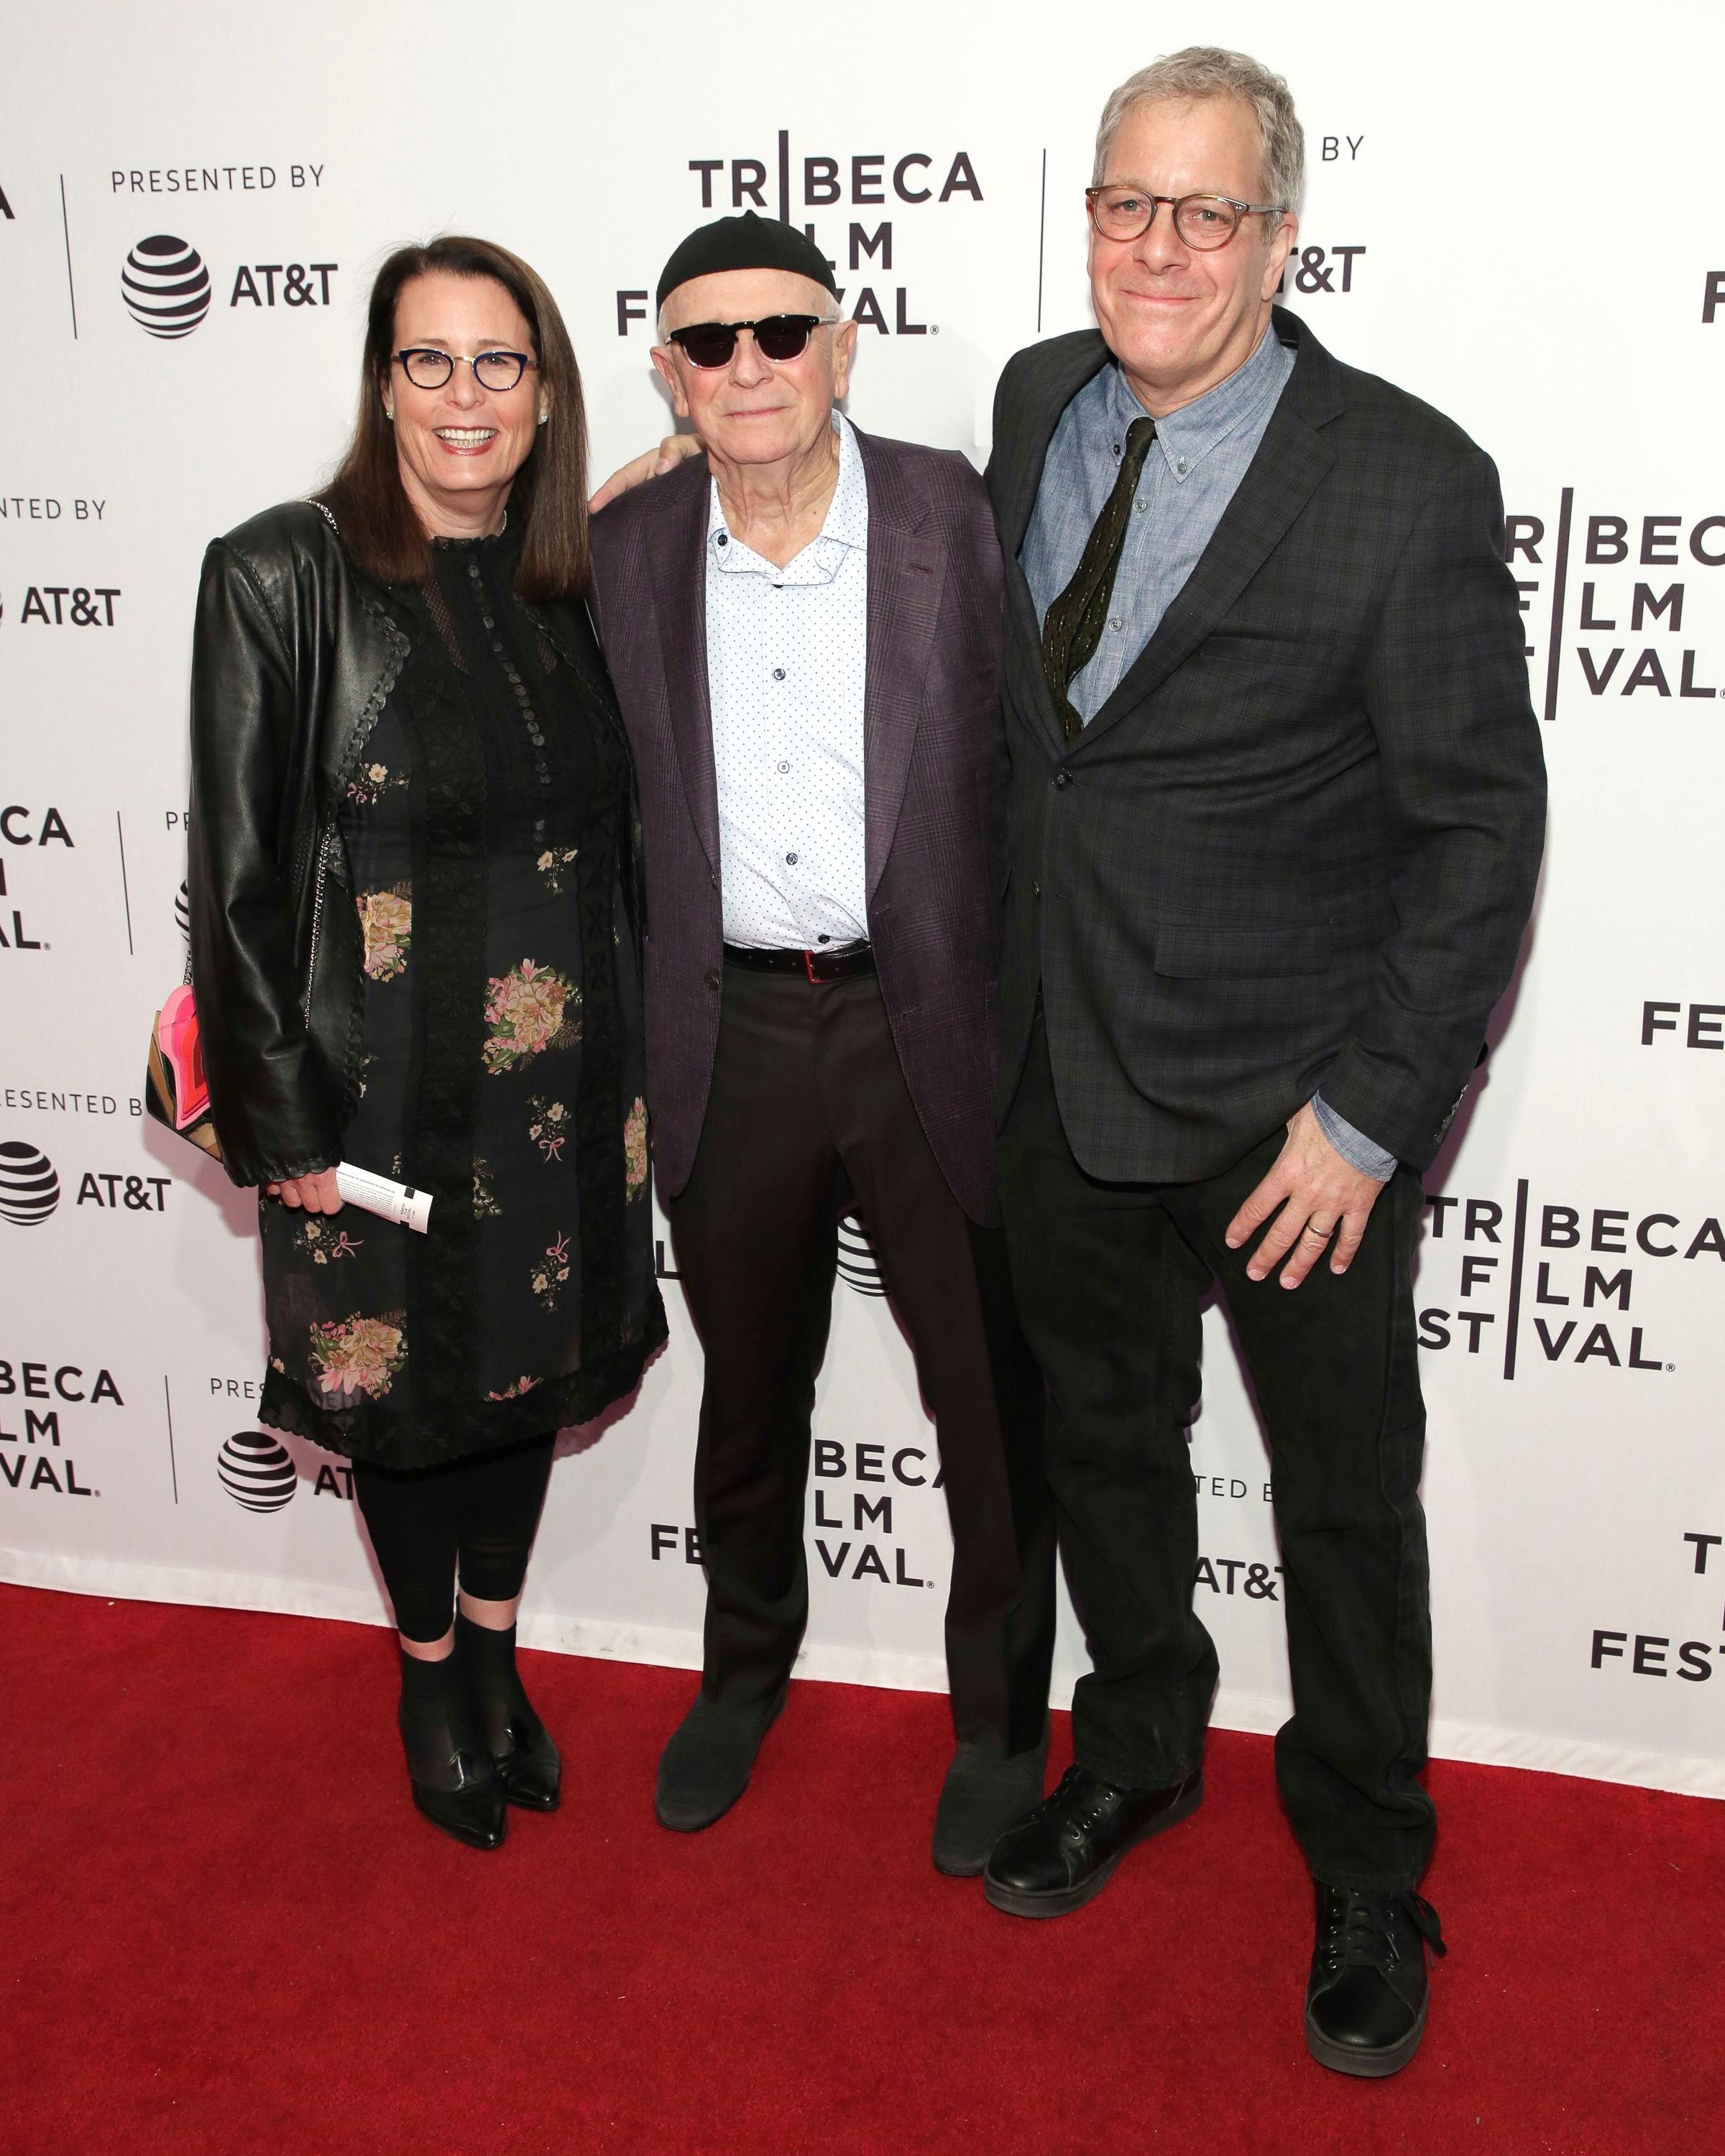 """Marcia Ross, Terrence McNally, Jeff Kaufman. Producer Marcia Ross, from left, playwright Terrence McNally, and director Jeff Kaufman attend a screening of """"Every Act of Life"""" at the SVA Theatre during the 2018 Tribeca Film Festival on in New York2018 Tribeca Film Festival - """"Every Act of Life"""" Screening, New York, USA - 23 Apr 2018"""